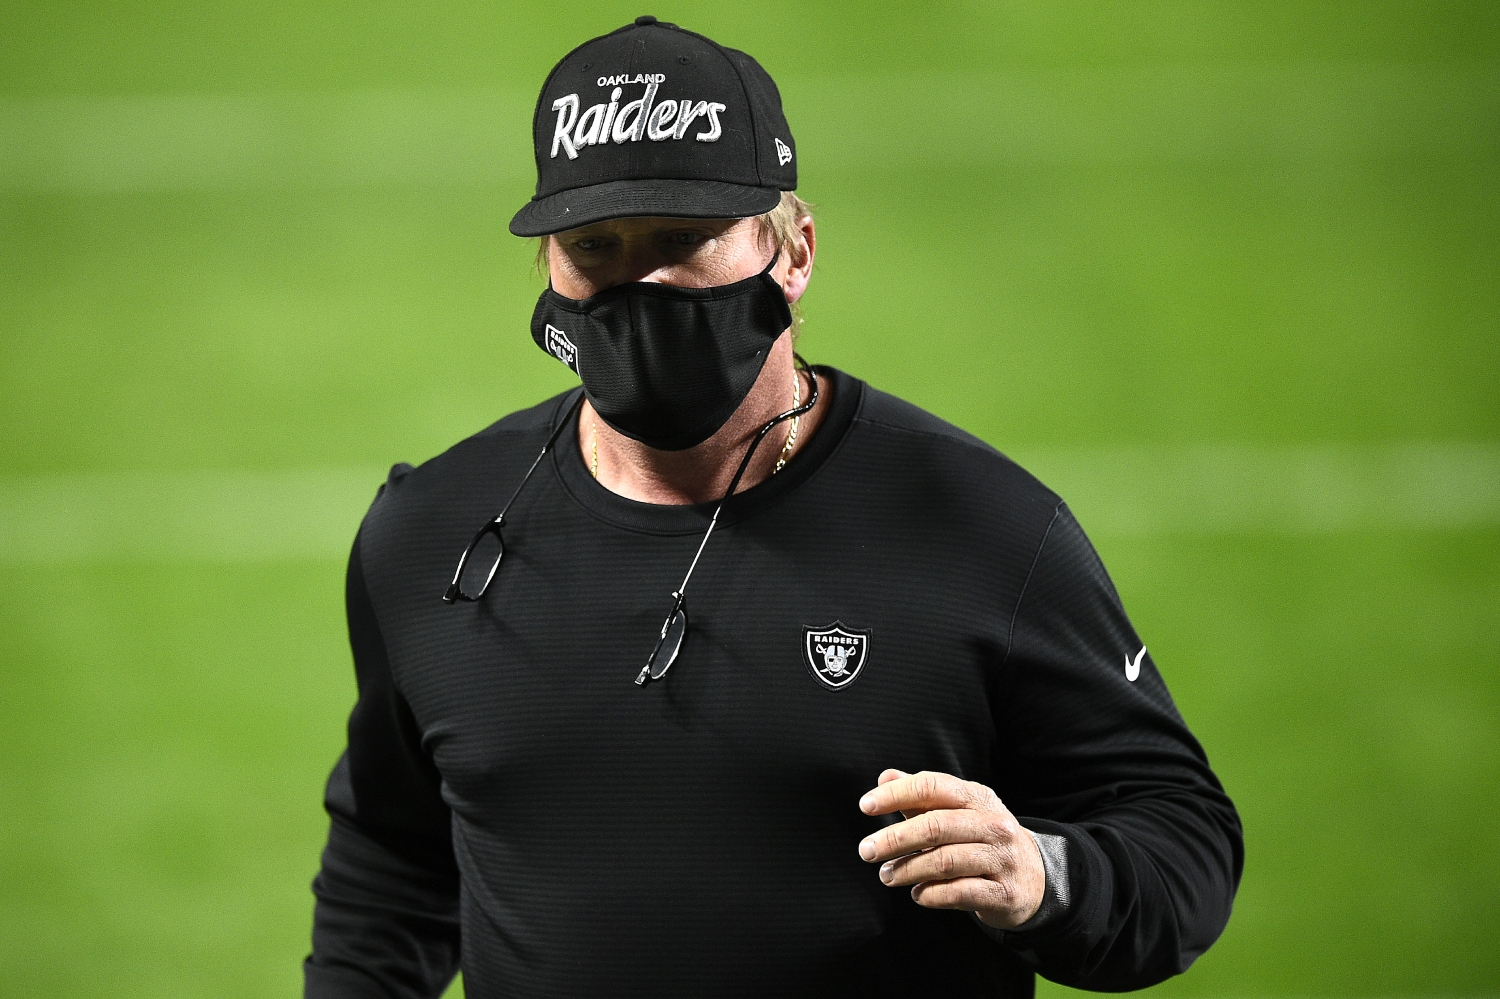 Jon Gruden's Hat Stole the Show Thursday Night